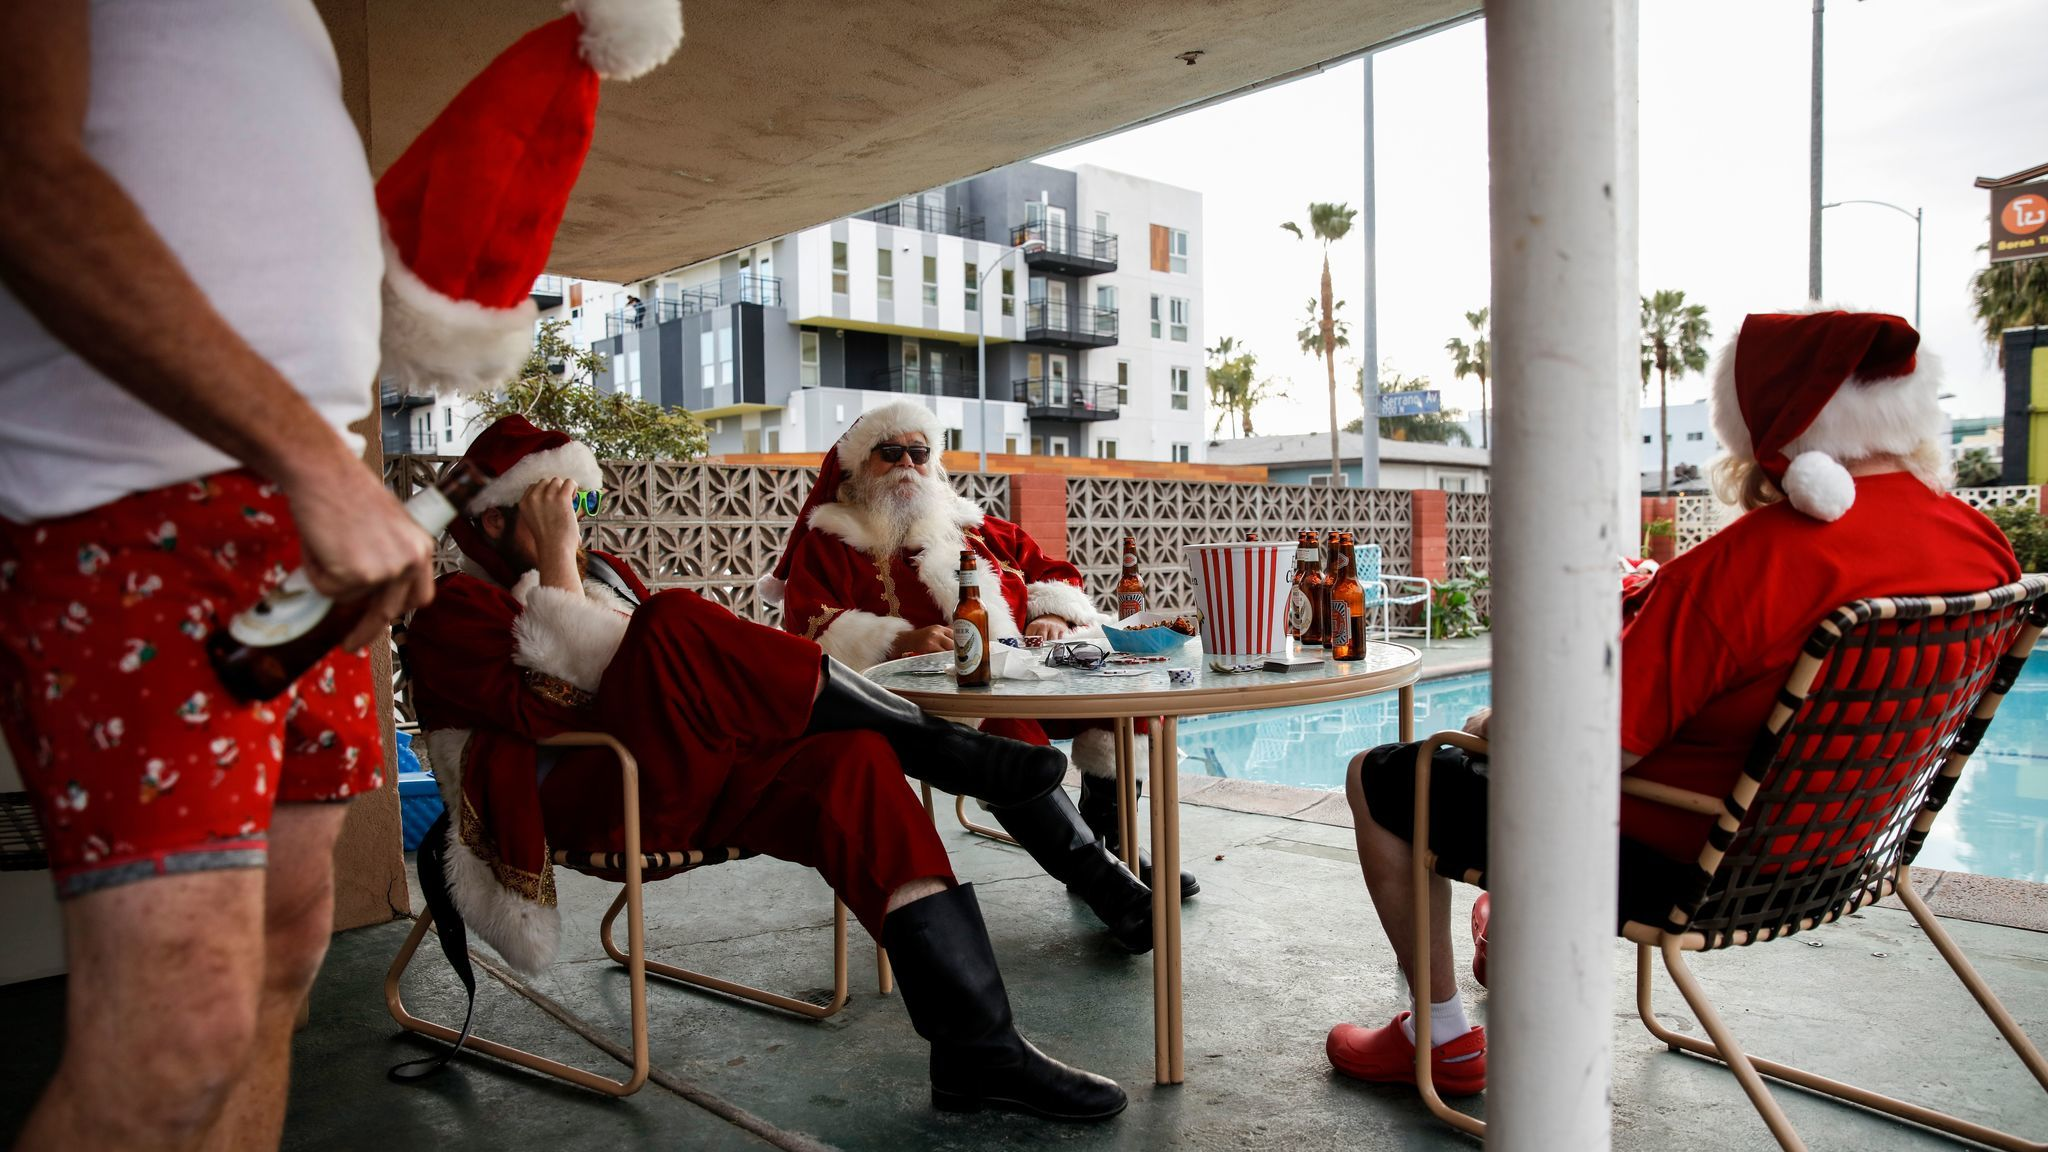 Background actors in Santa costumes get into position at a motel in Hollywood during filming of FX's